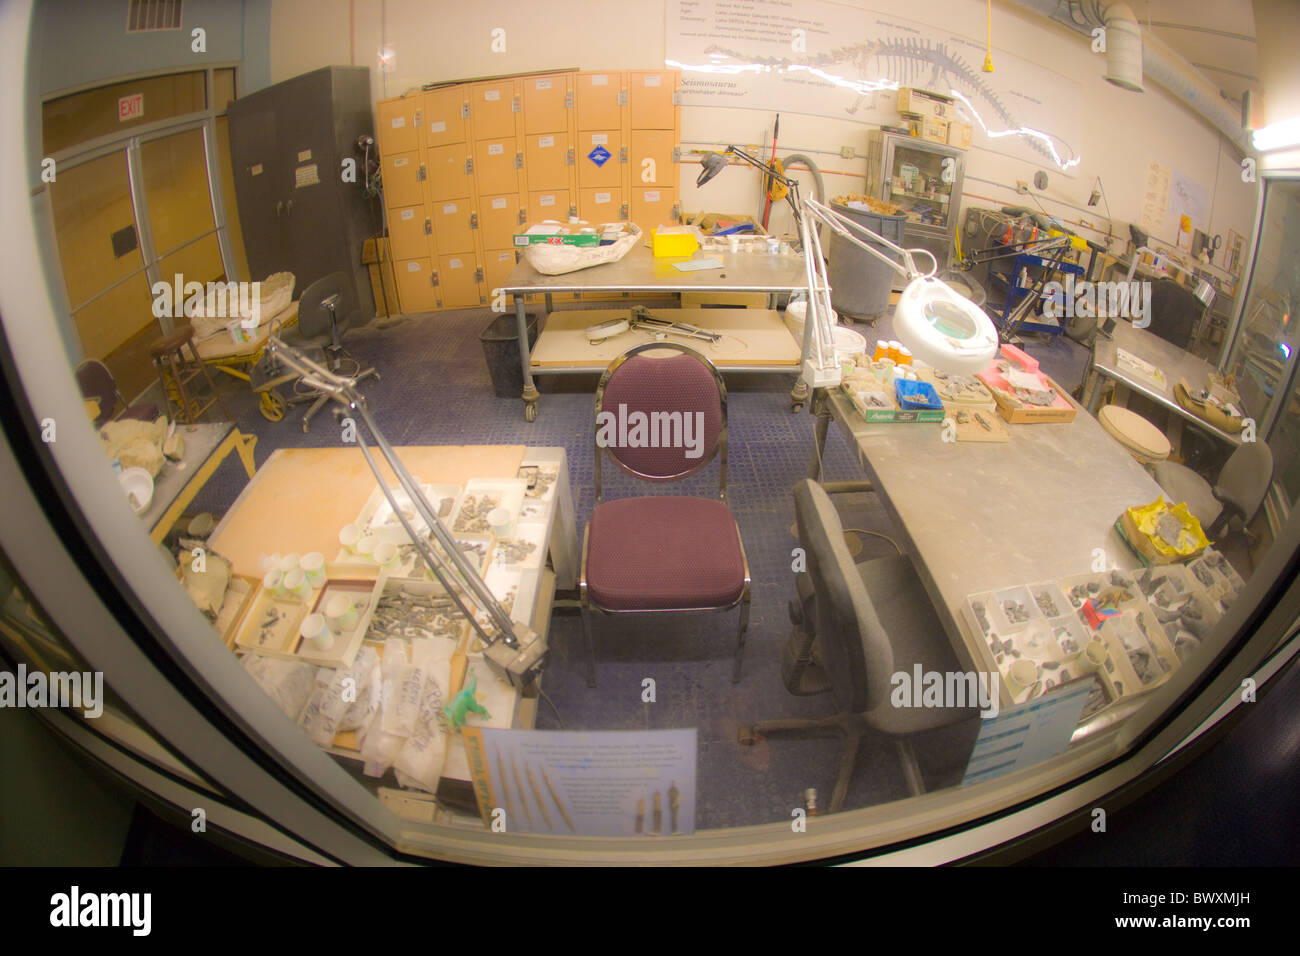 Looking through a window, inside a lab of archeologist, prehistoric bones, fossil, drills, measuring devices. - Stock Image